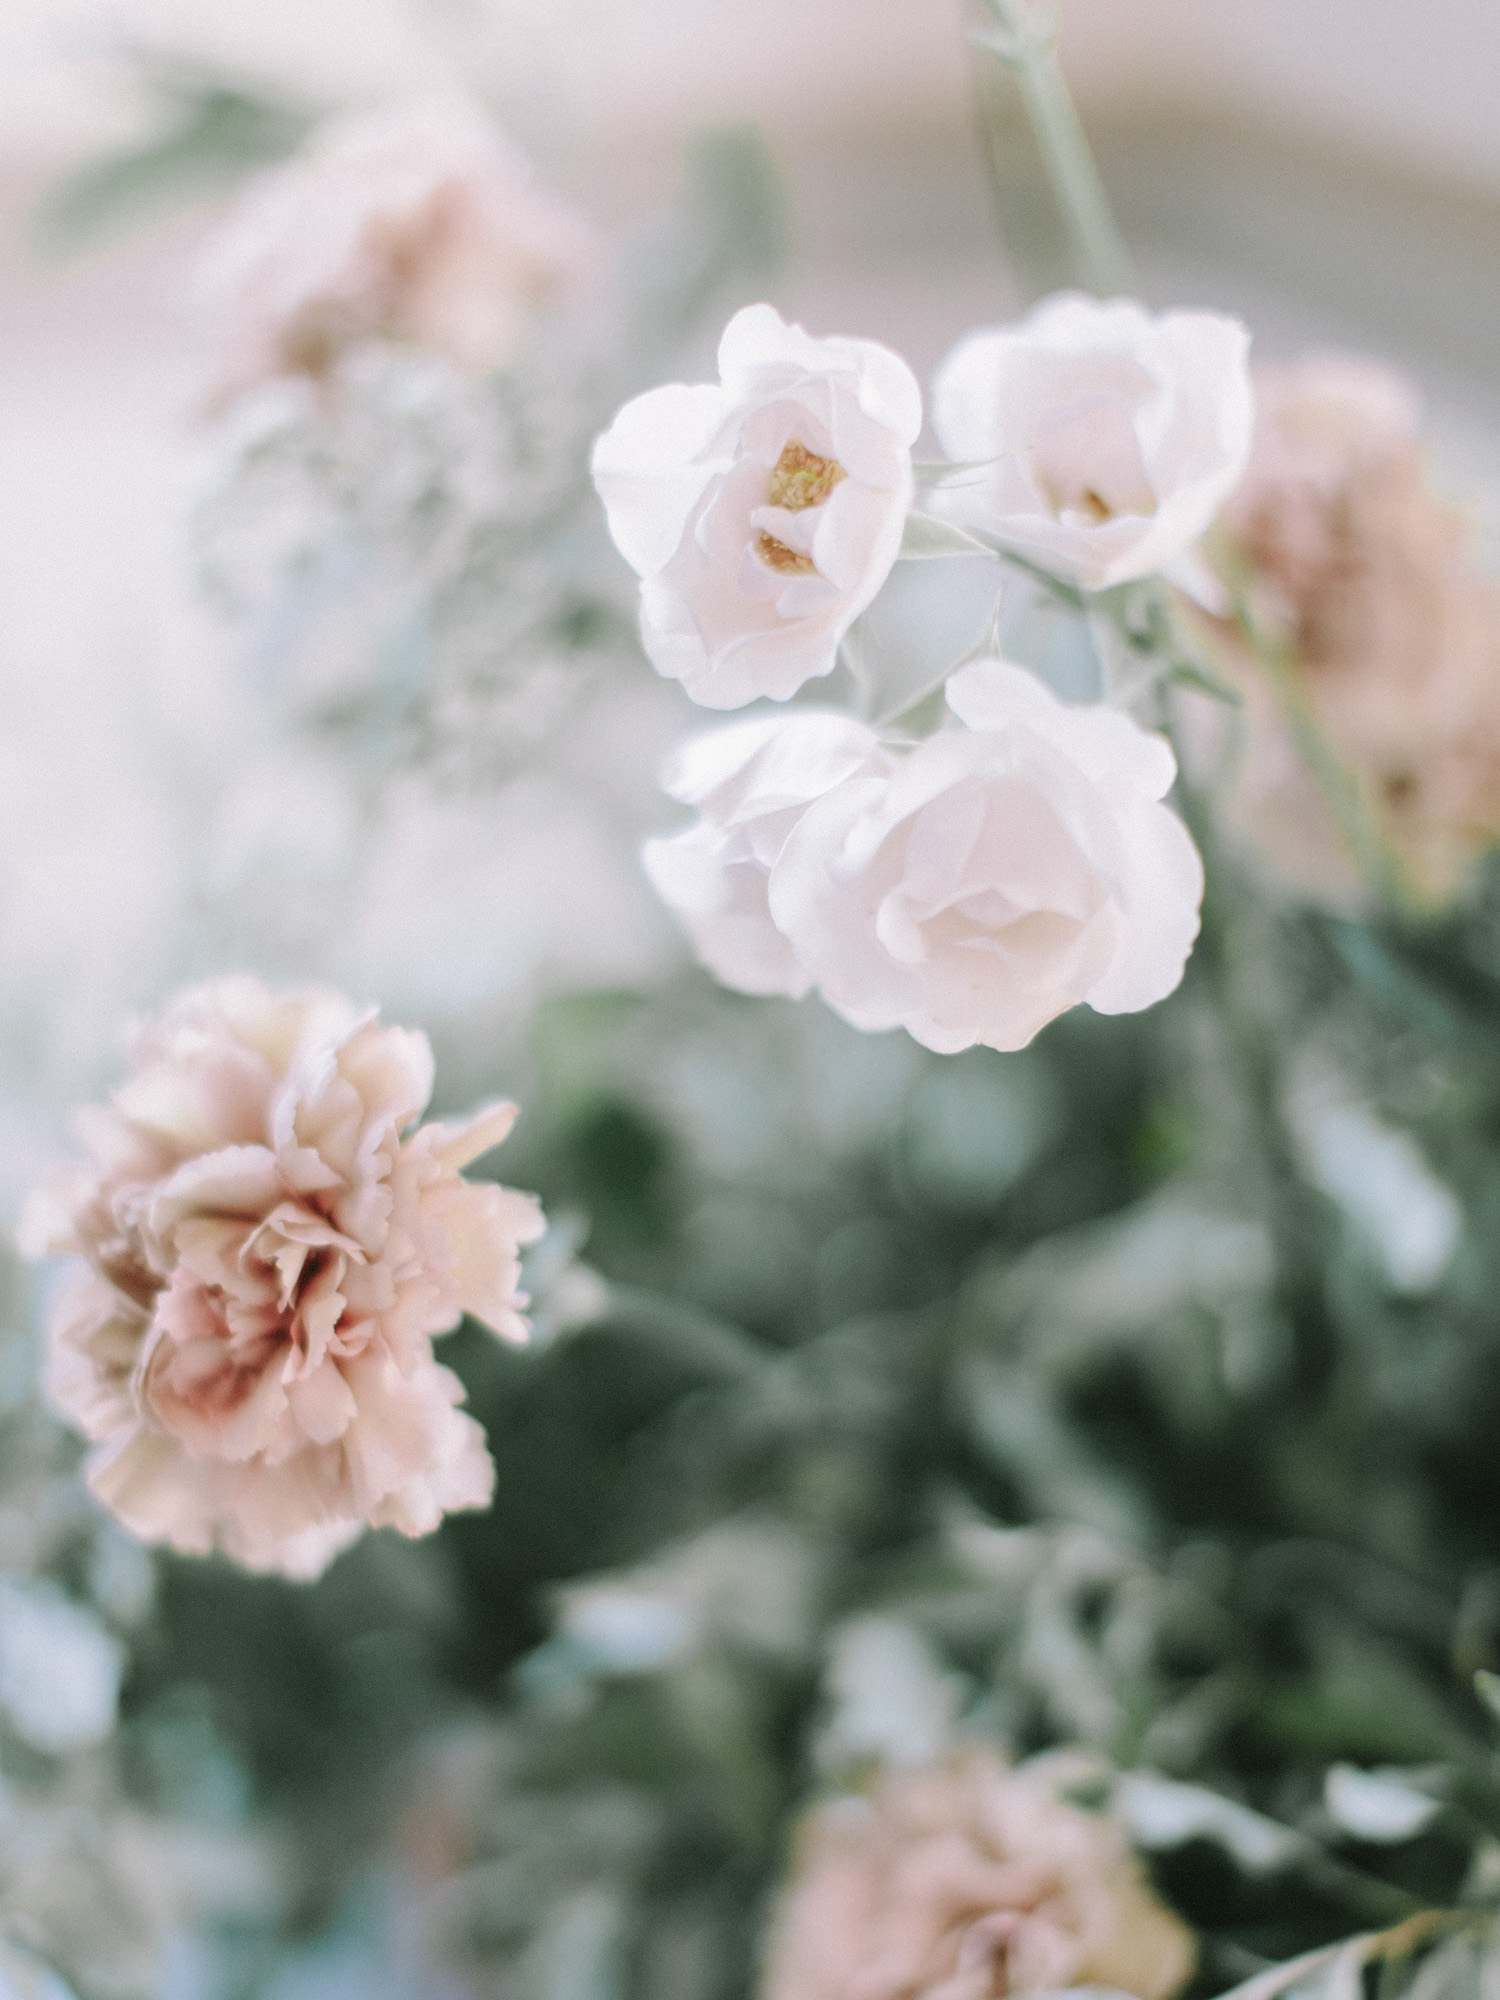 Peach and blush carnations and garden roses captured in soft focus at a wedding reception at the Polo Fields in Ann Arbor